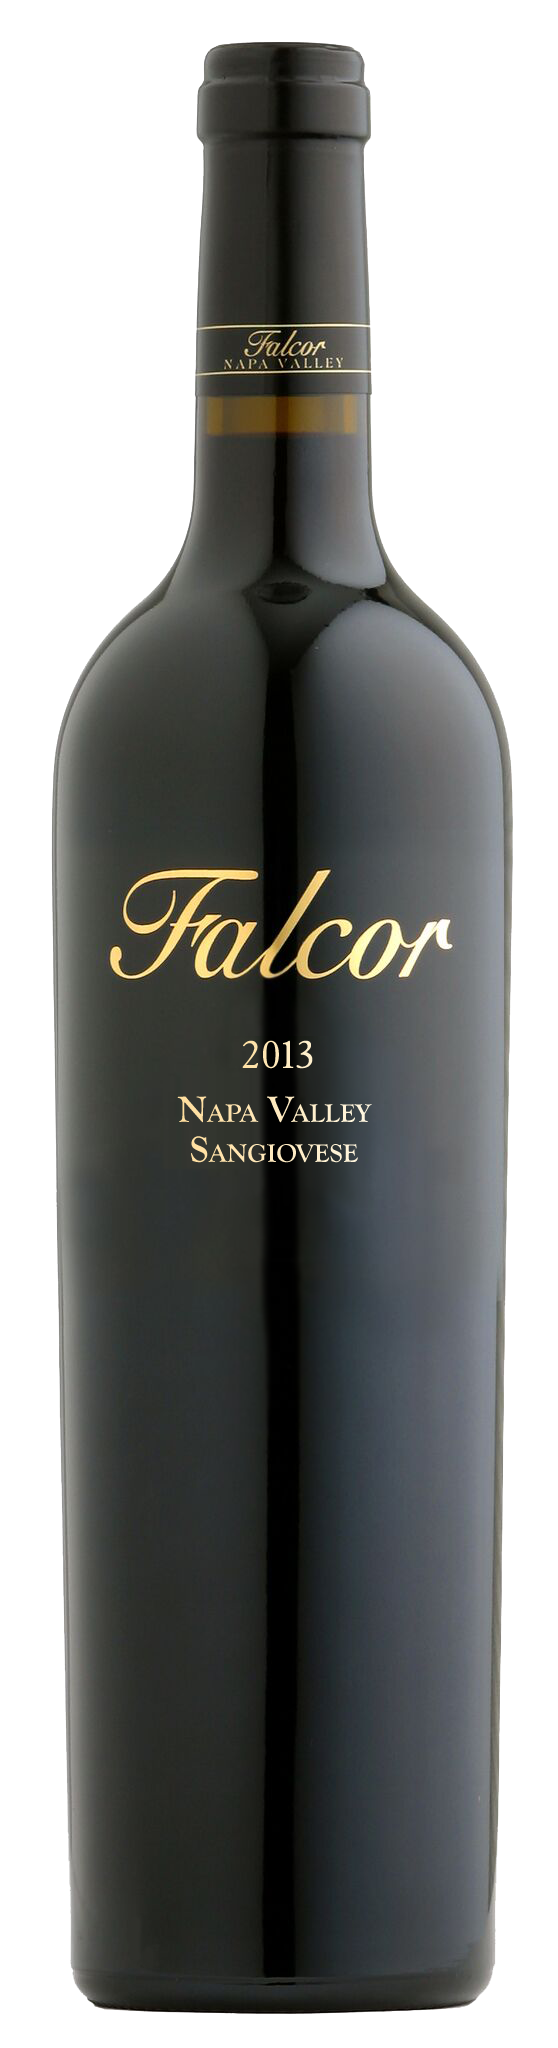 Product Image for 2013 Sangiovese